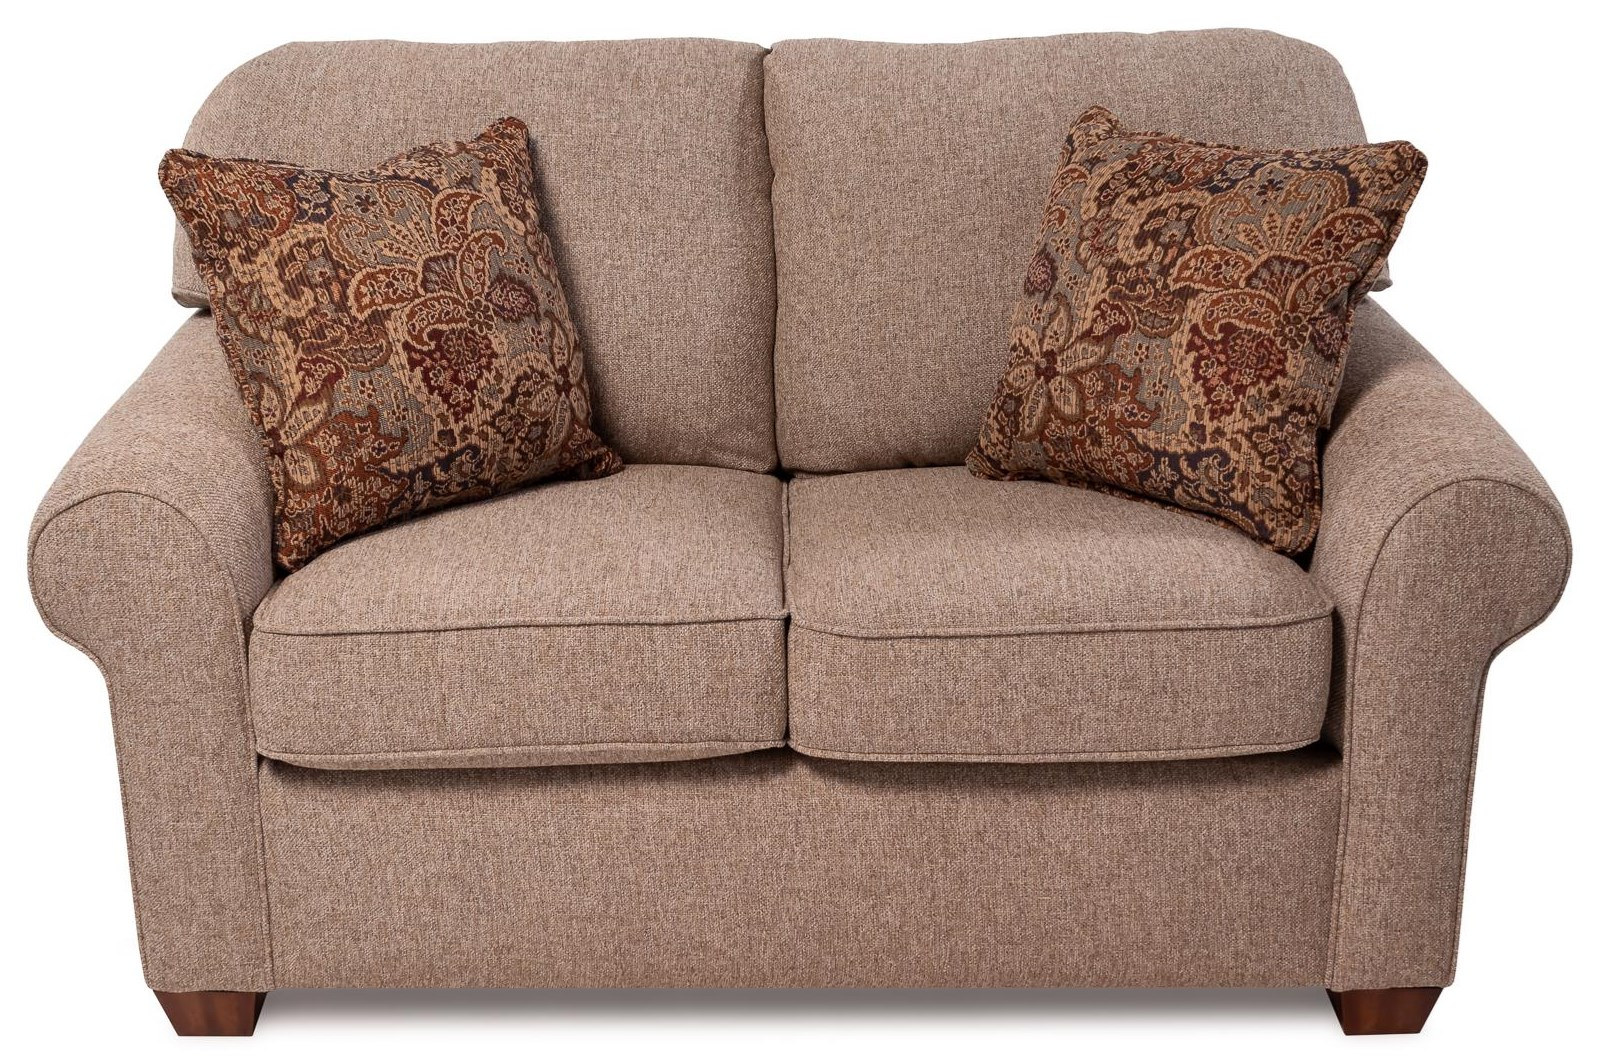 Aladdin Upholstered Love Seat by Flexsteel at Rotmans